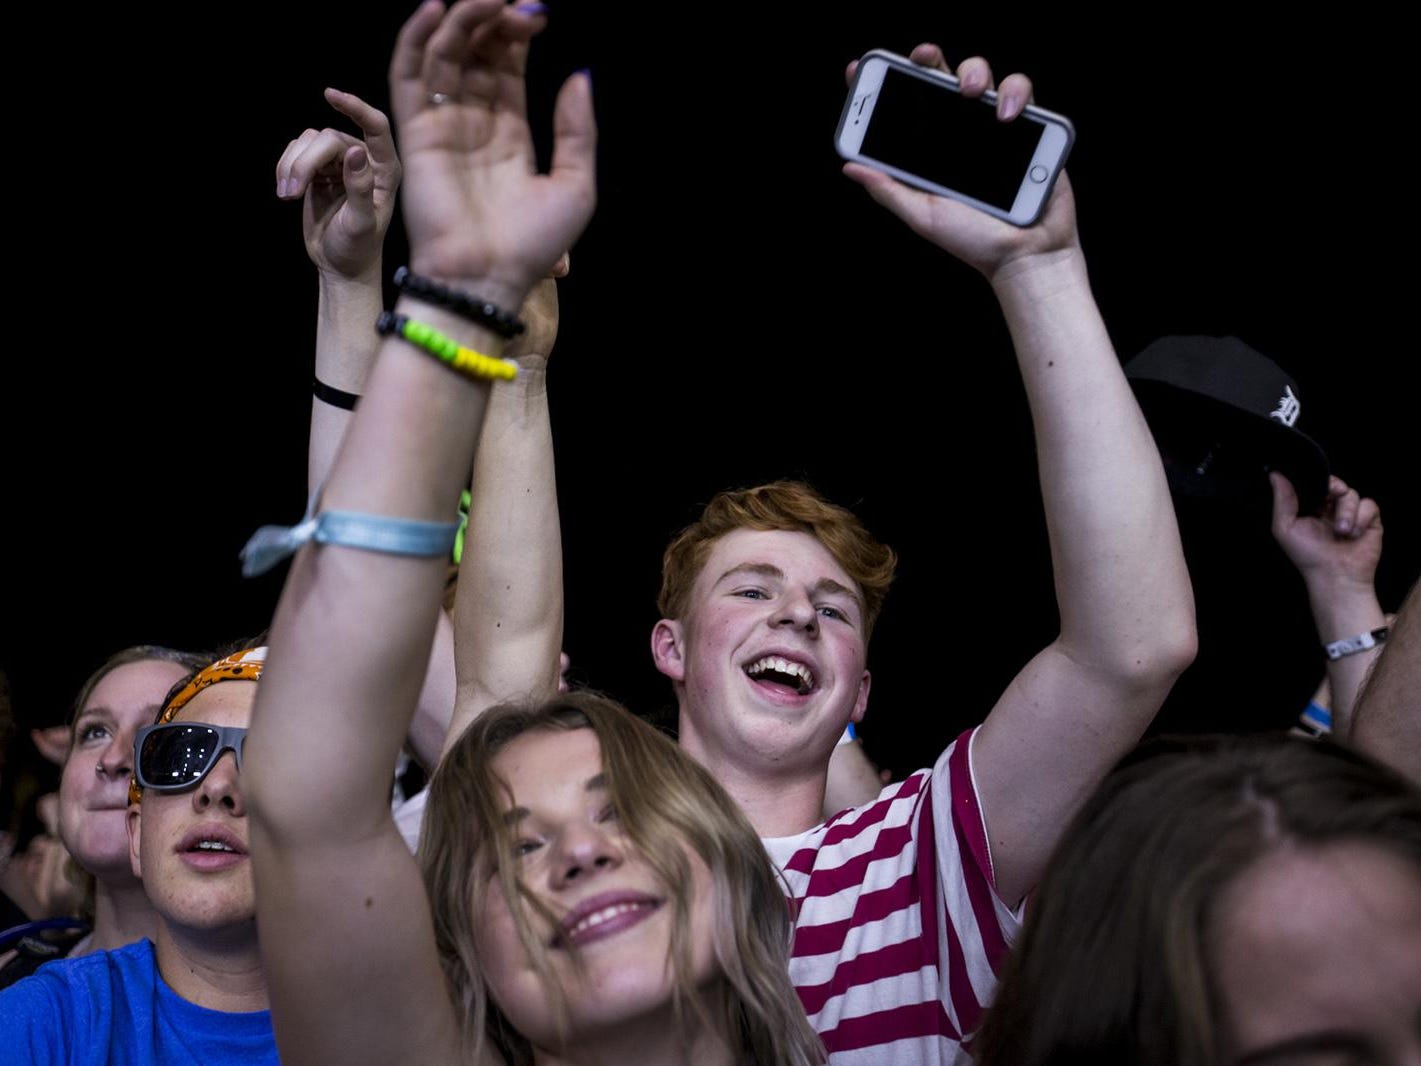 Fans watch Odesza perform during McDowell Mountain Music Festival on Friday, March 1, 2019, at Margaret T. Hance Park in Phoenix.